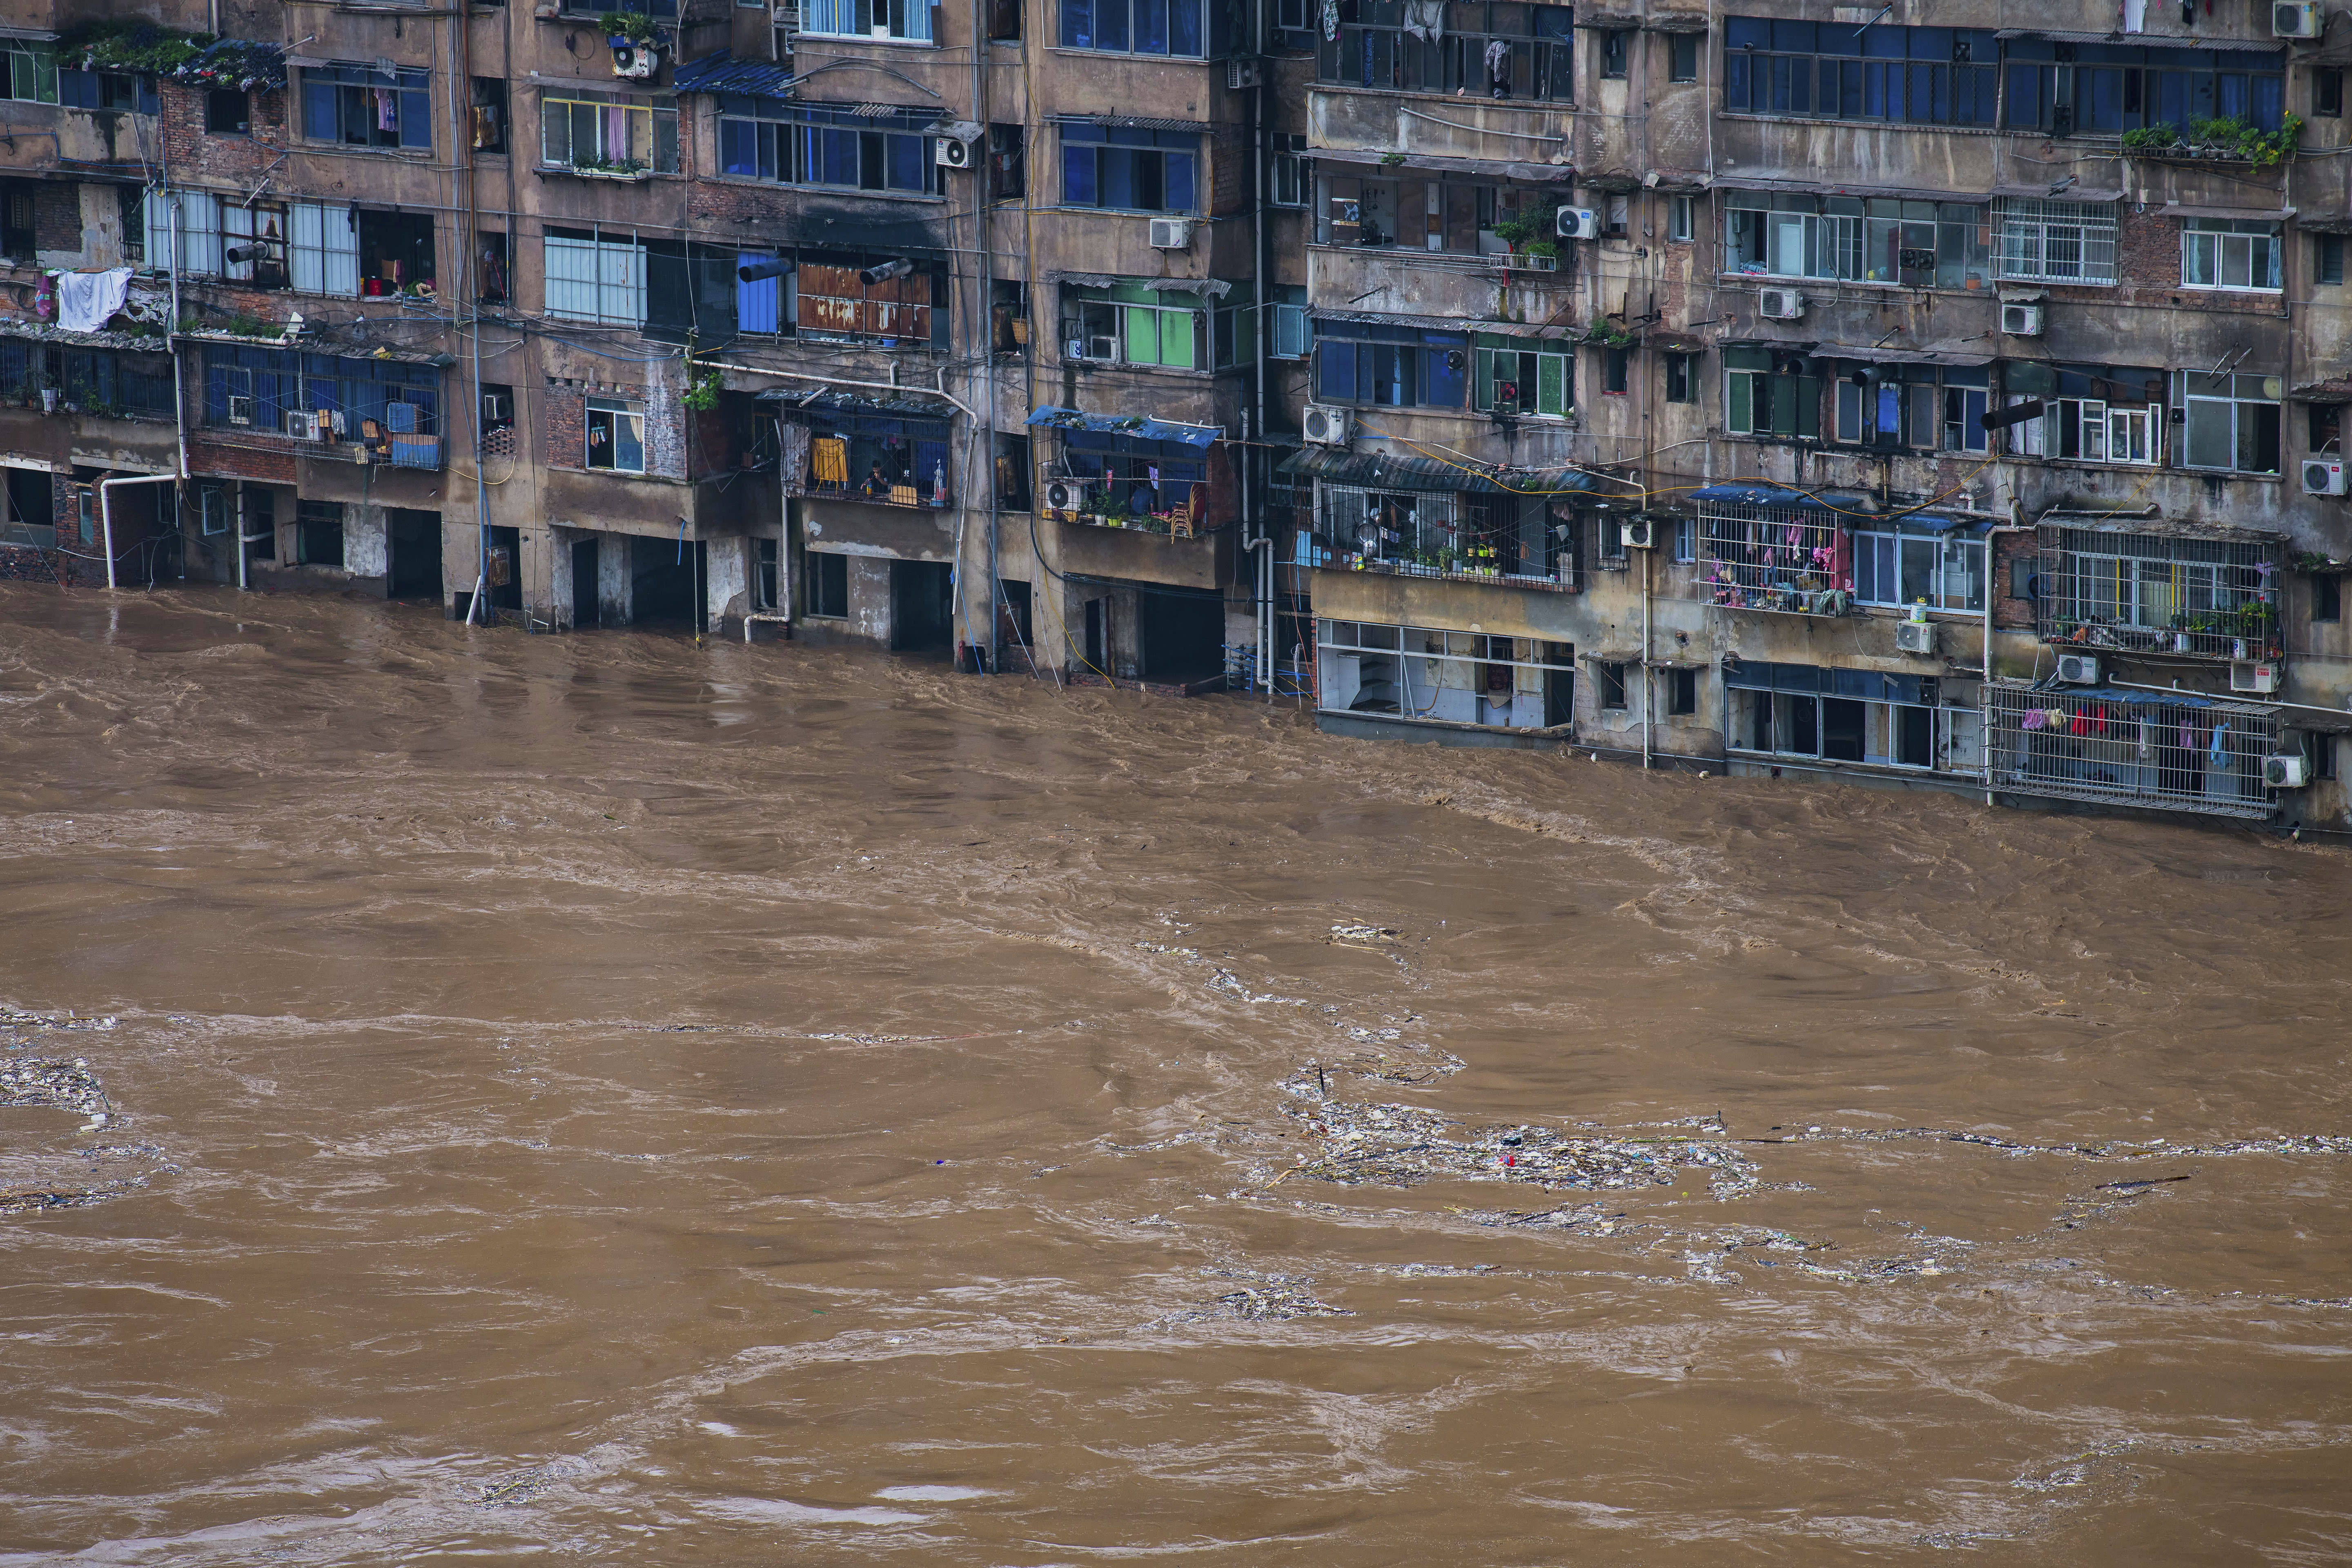 In this photo released by Xinhua News Agency, floodwaters flow past a residential building in Qijiang District of Chongqing Municipality, southwest China on July 1, 2020. A wide swath of southern China braced Sunday, July 5, 2020 for more seasonal rains and flooding. (Chen Xingyu/Xinhua via AP)